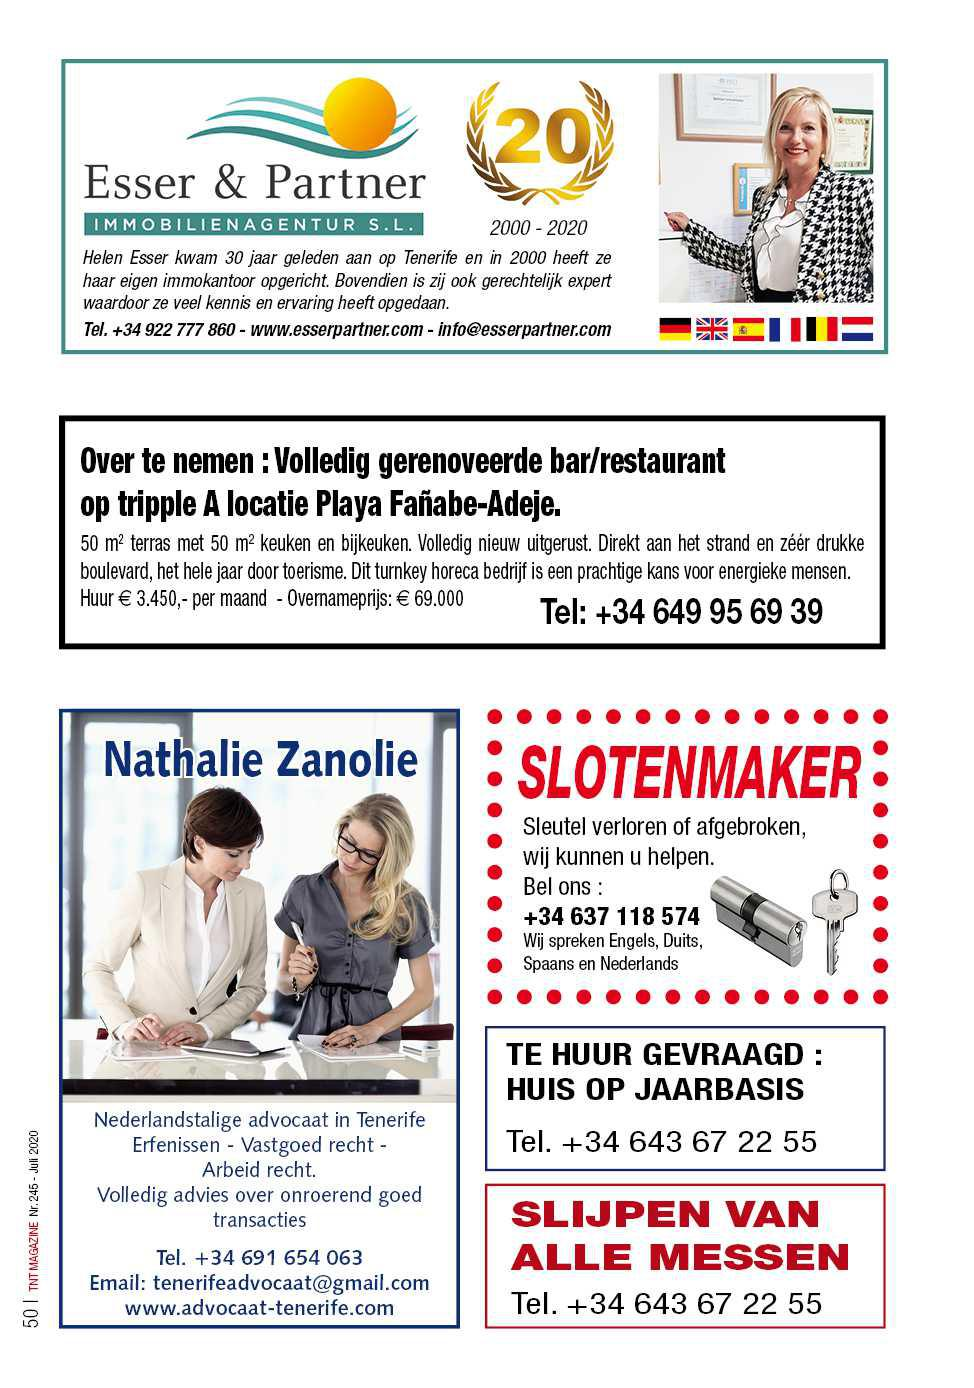 TNT Magazine - juli 2020 - digitale versie